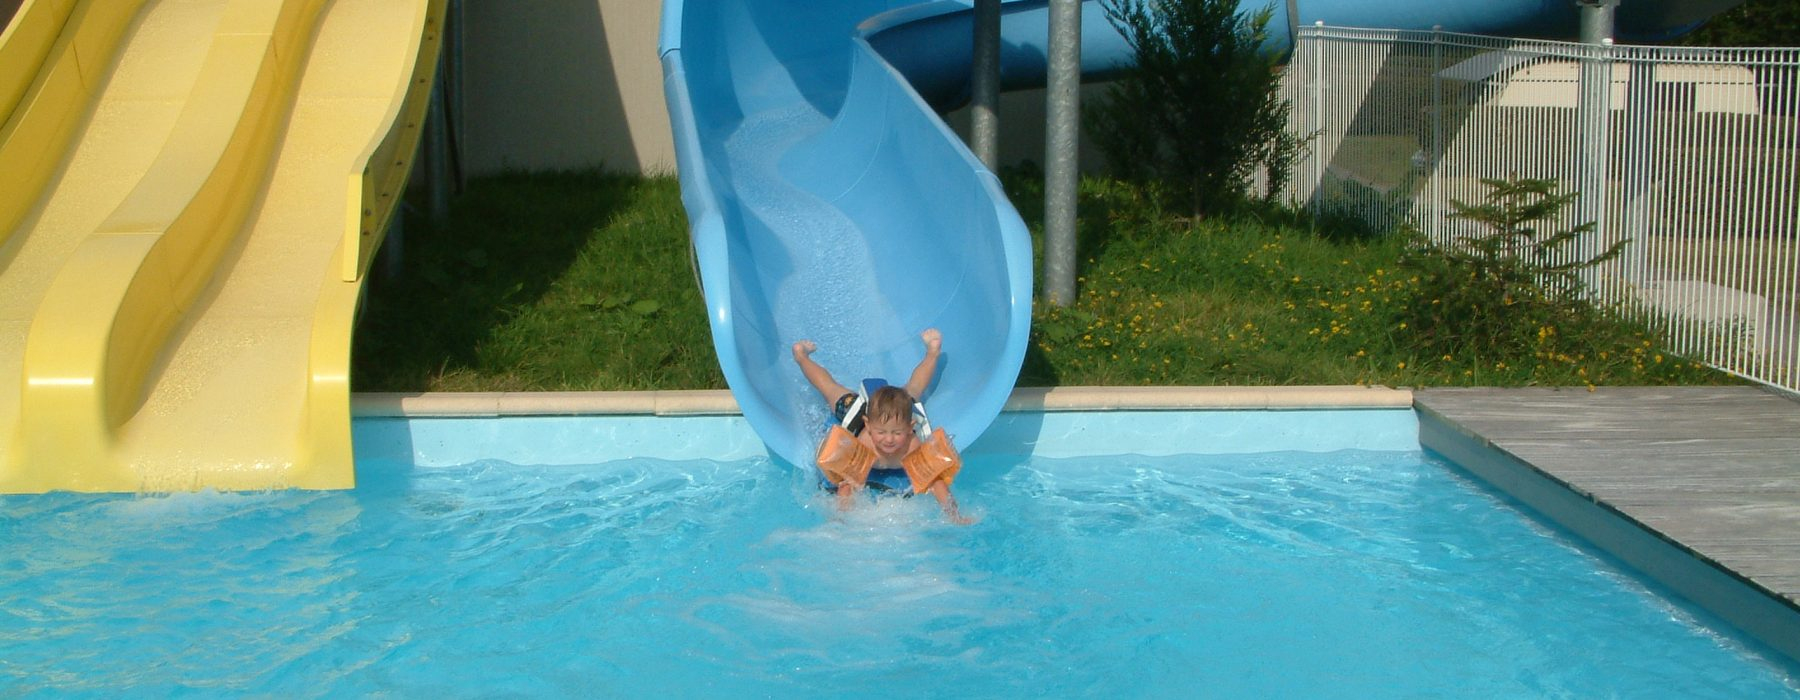 Swimming Pool Area | Camping Belle Hutte pour Camping Var Avec Piscine